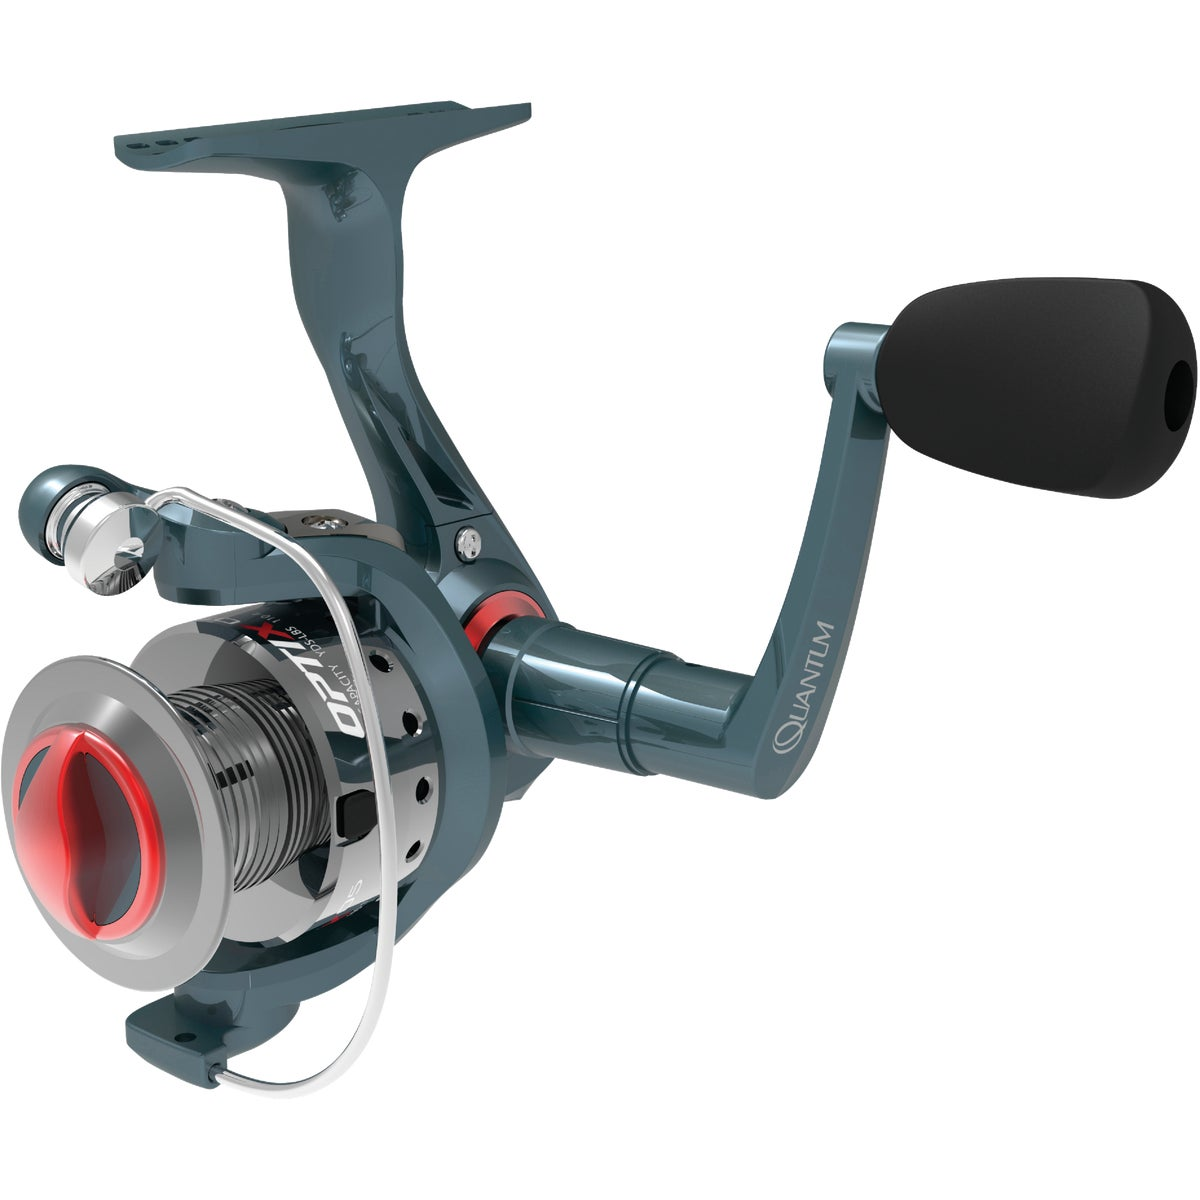 4LB OPTIX SPINNING REEL - OP10FC-CP3 by Zebco